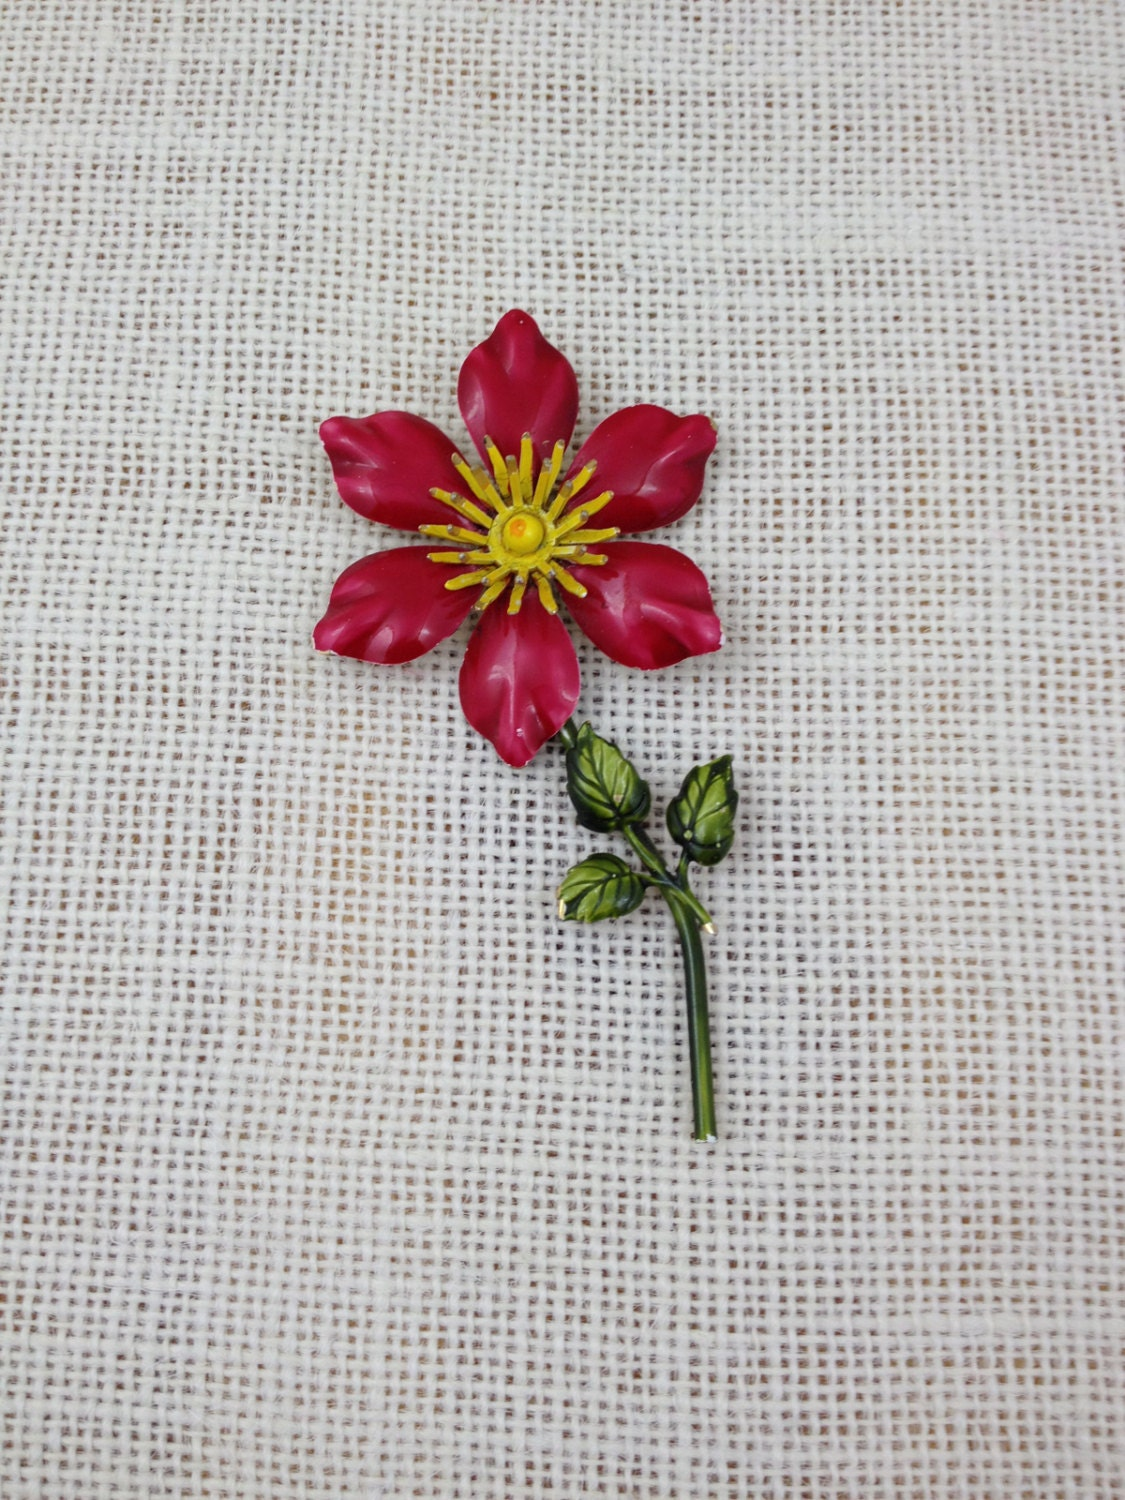 Vintage rosey red flower brooch with yellow center and green description vintage rosey red flower brooch with yellow center mightylinksfo